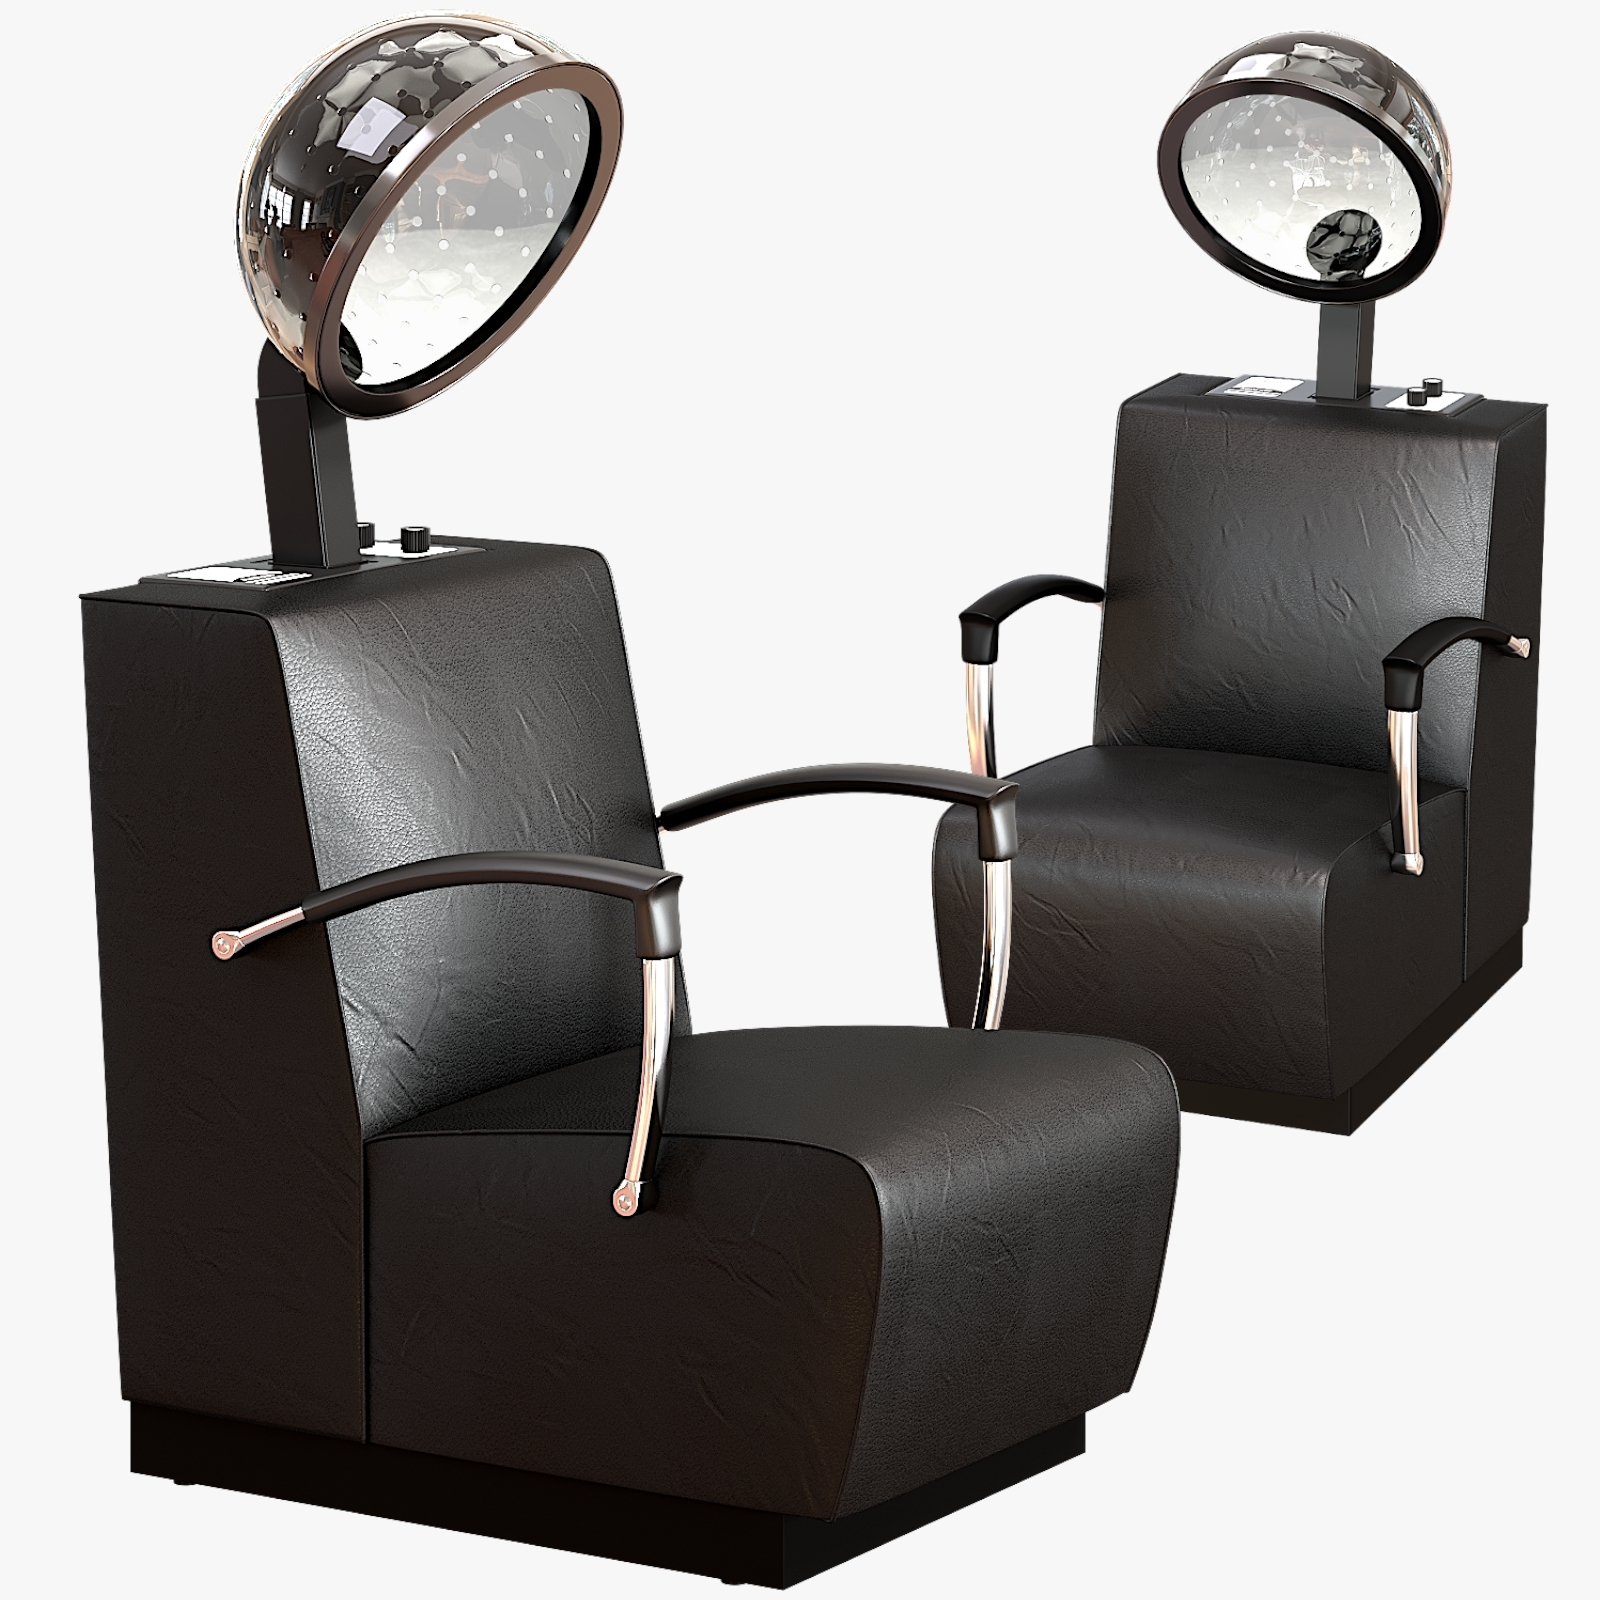 Tremendous Dryer Chair Caraccident5 Cool Chair Designs And Ideas Caraccident5Info